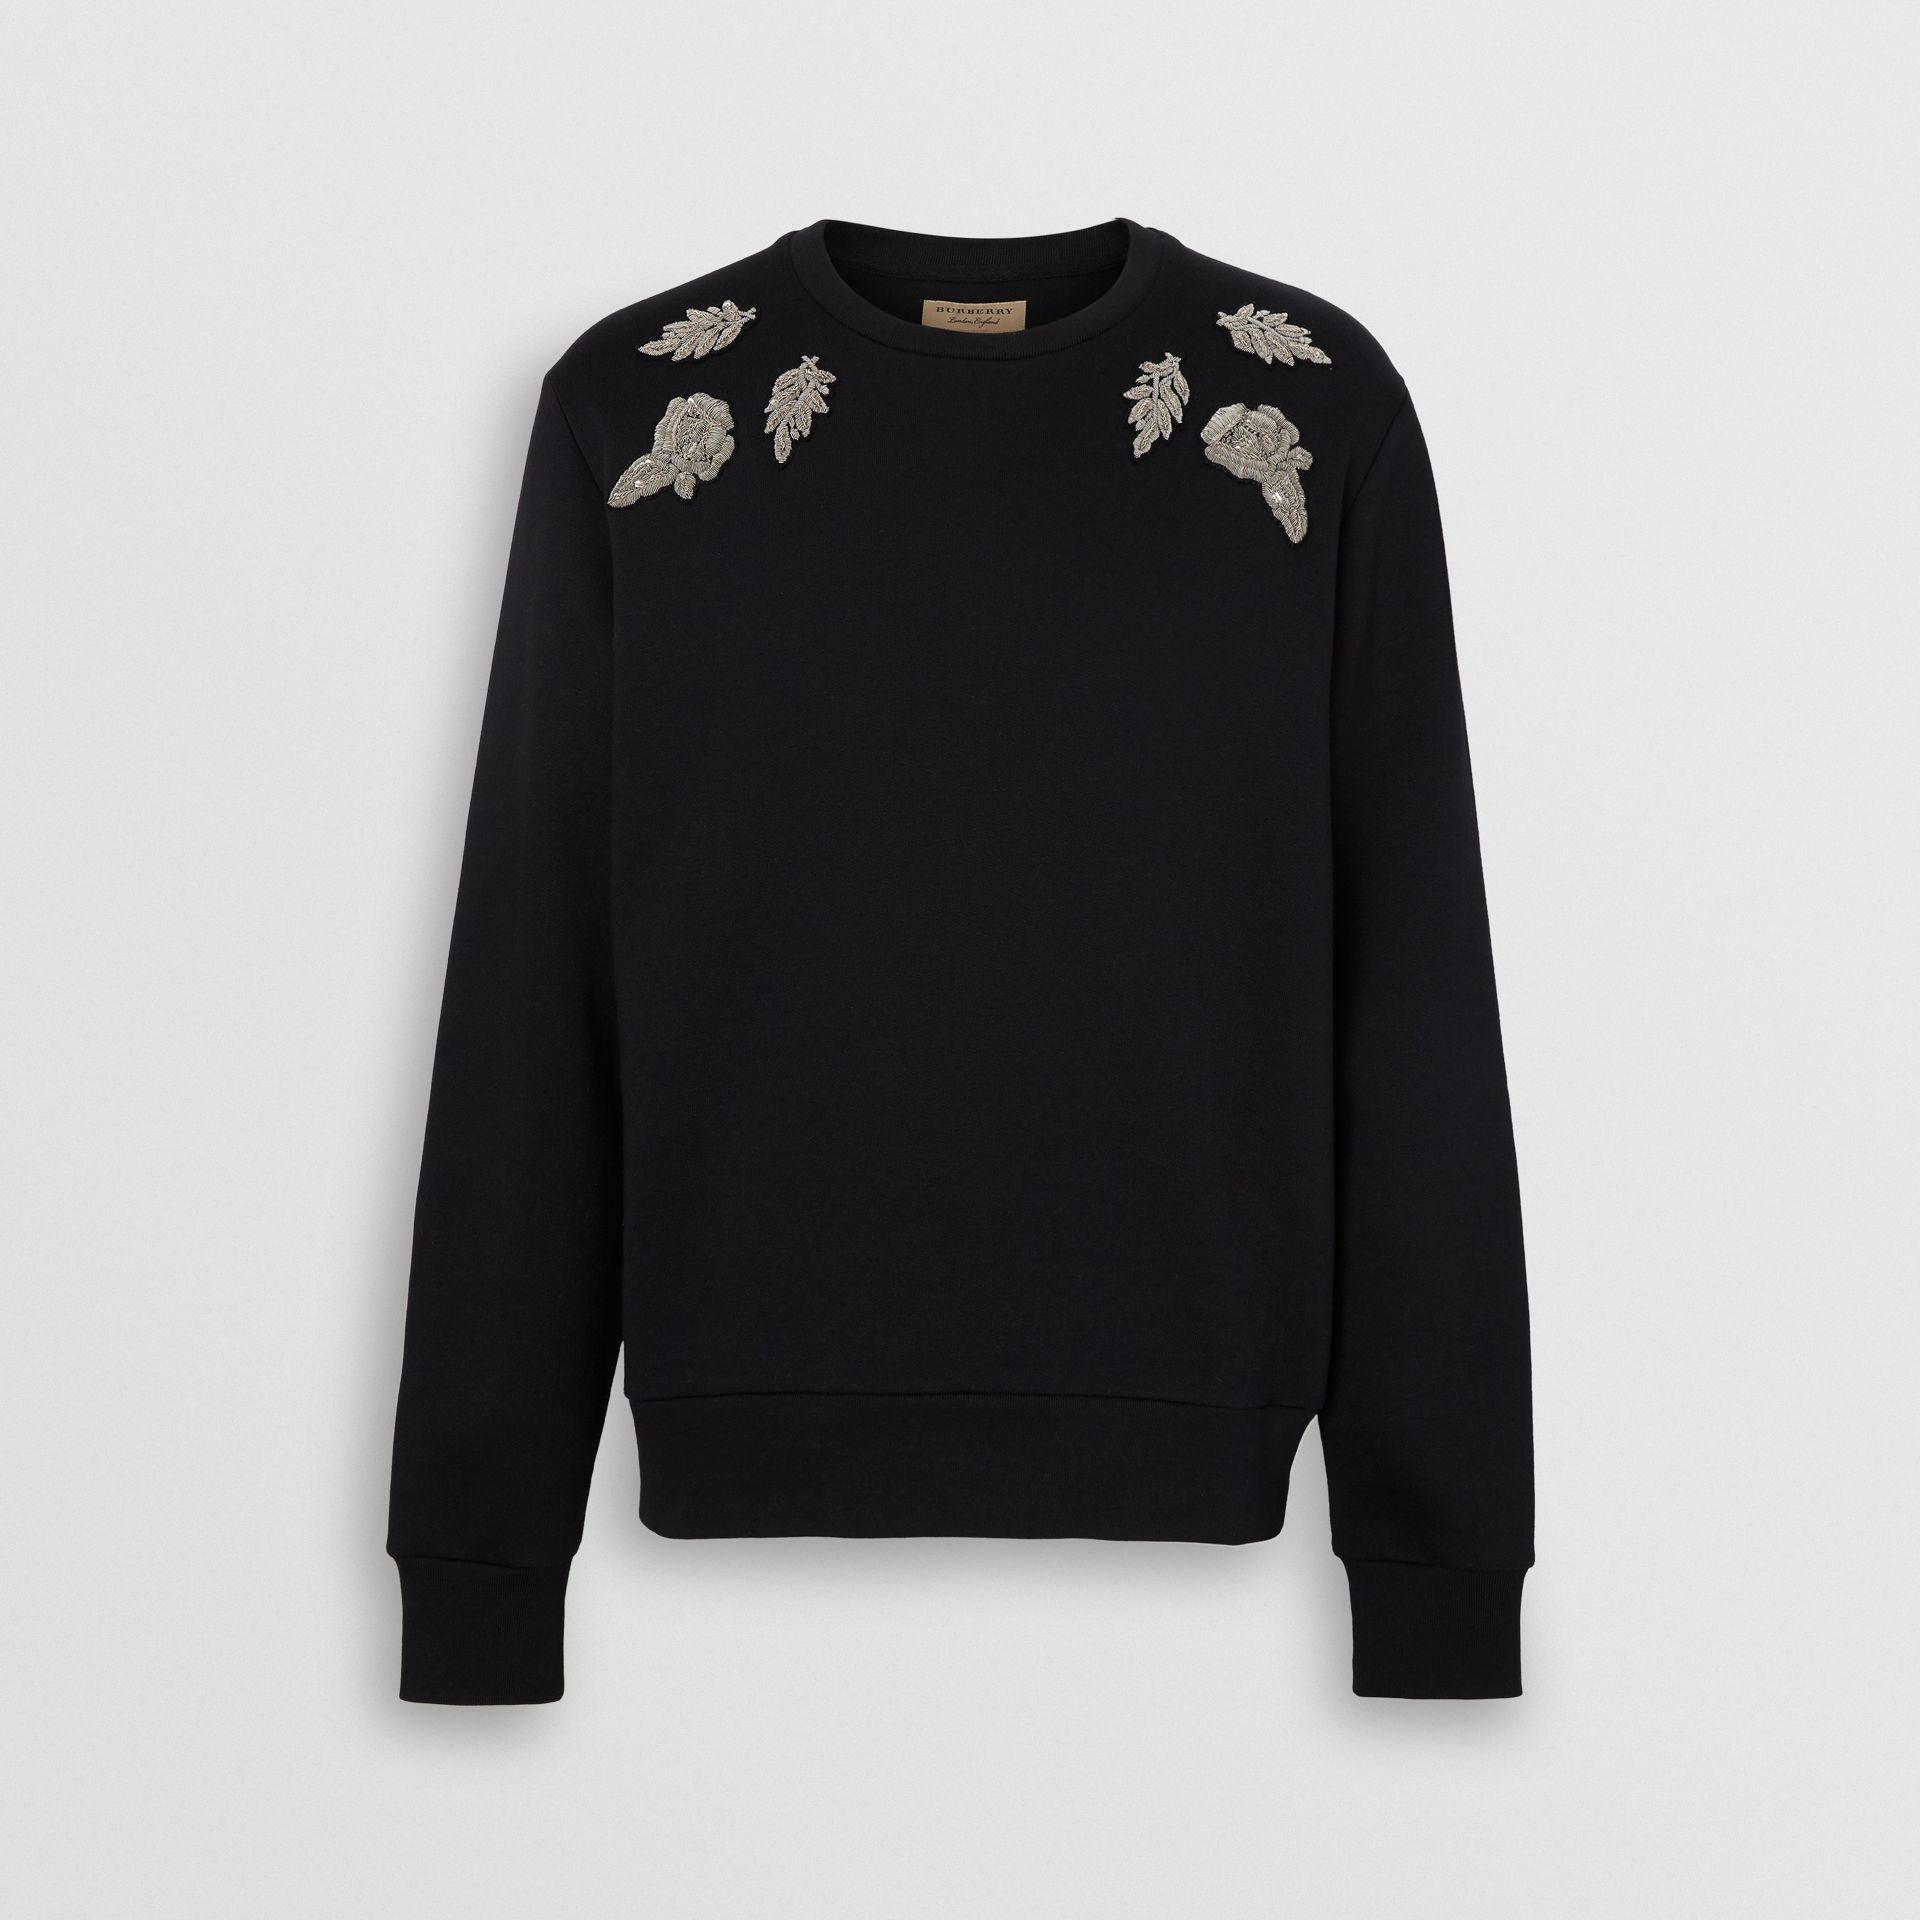 Bullion Floral Cotton Blend Sweatshirt in Black - Men | Burberry United Kingdom - gallery image 3